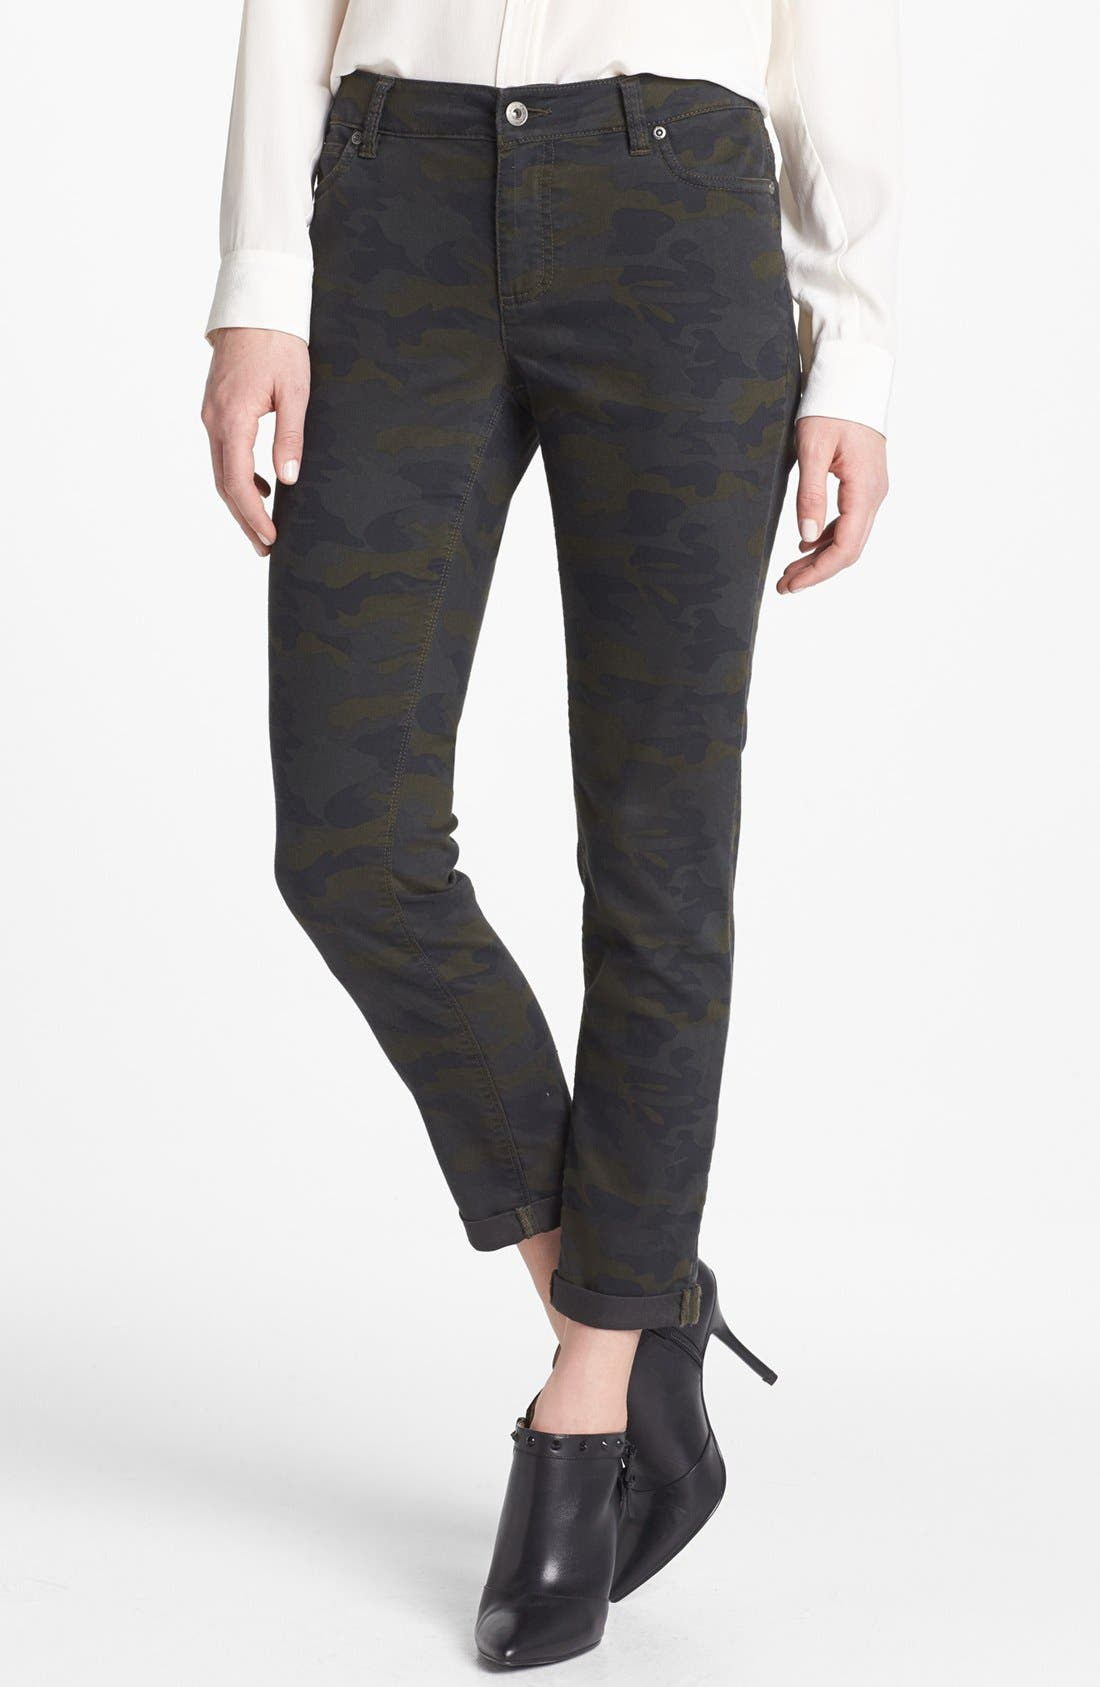 Alternate Image 1 Selected - Two by Vince Camuto Camo Cuff Jeans (Dark Leaf)